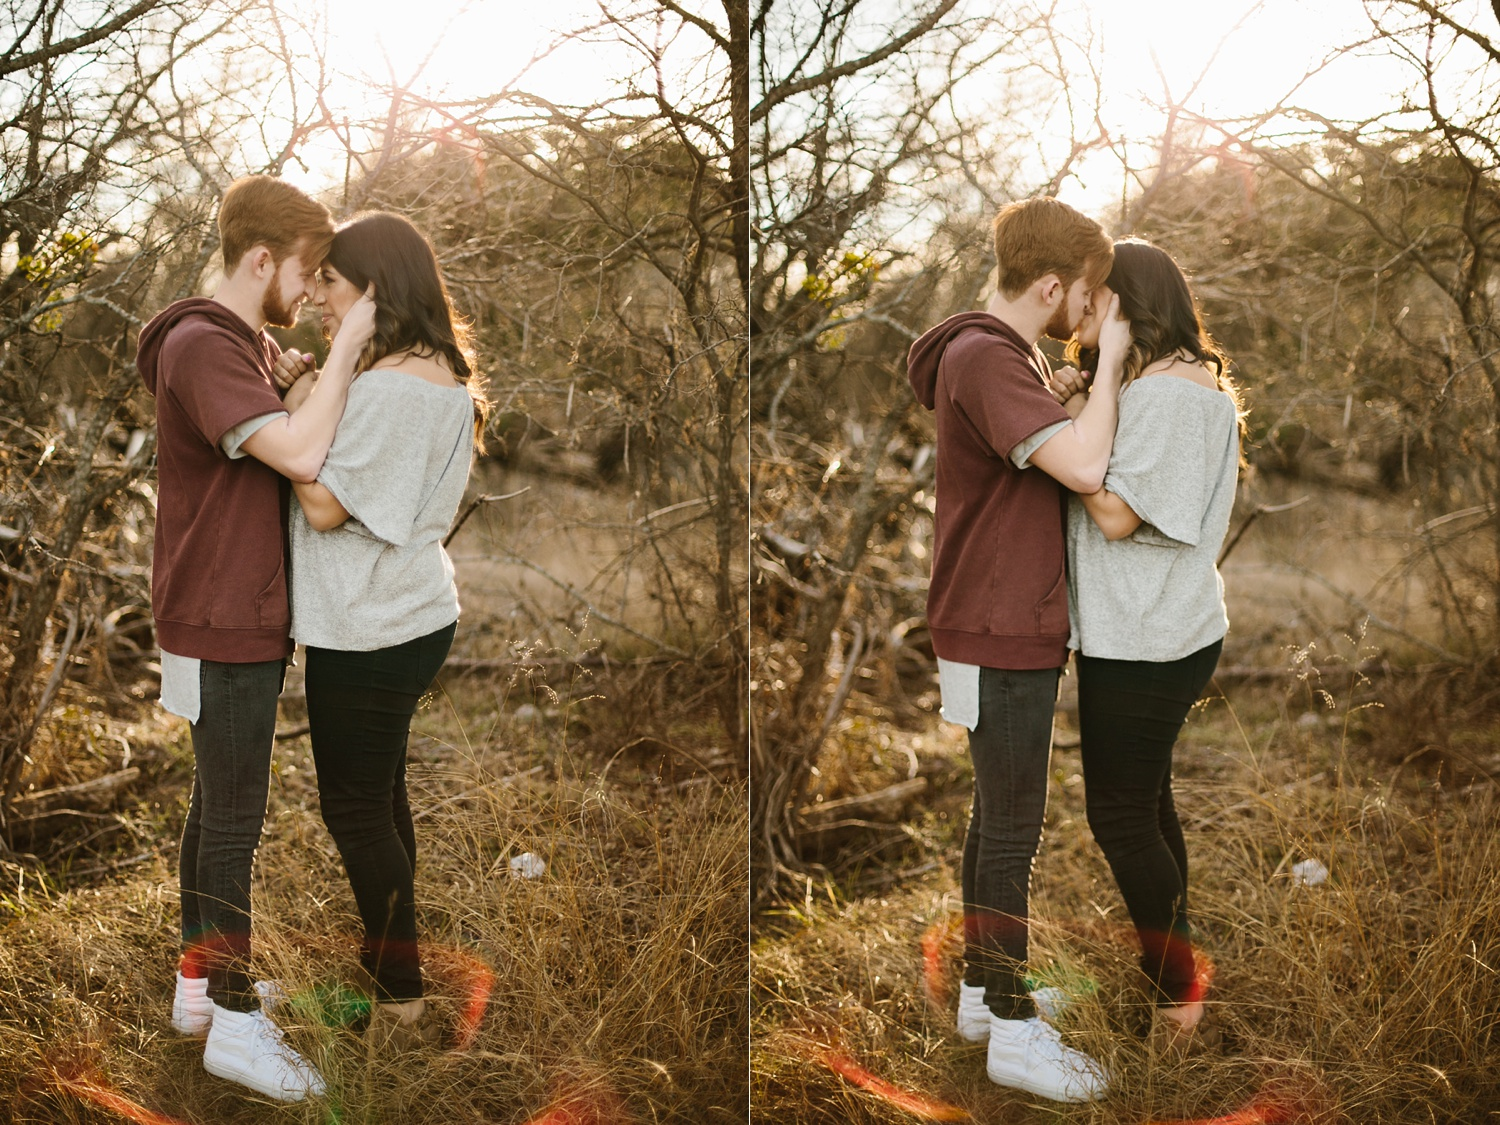 Grant + Lysette - floral dress engagement session by North Texas Wedding Photographer Rachel Meagan Photography019